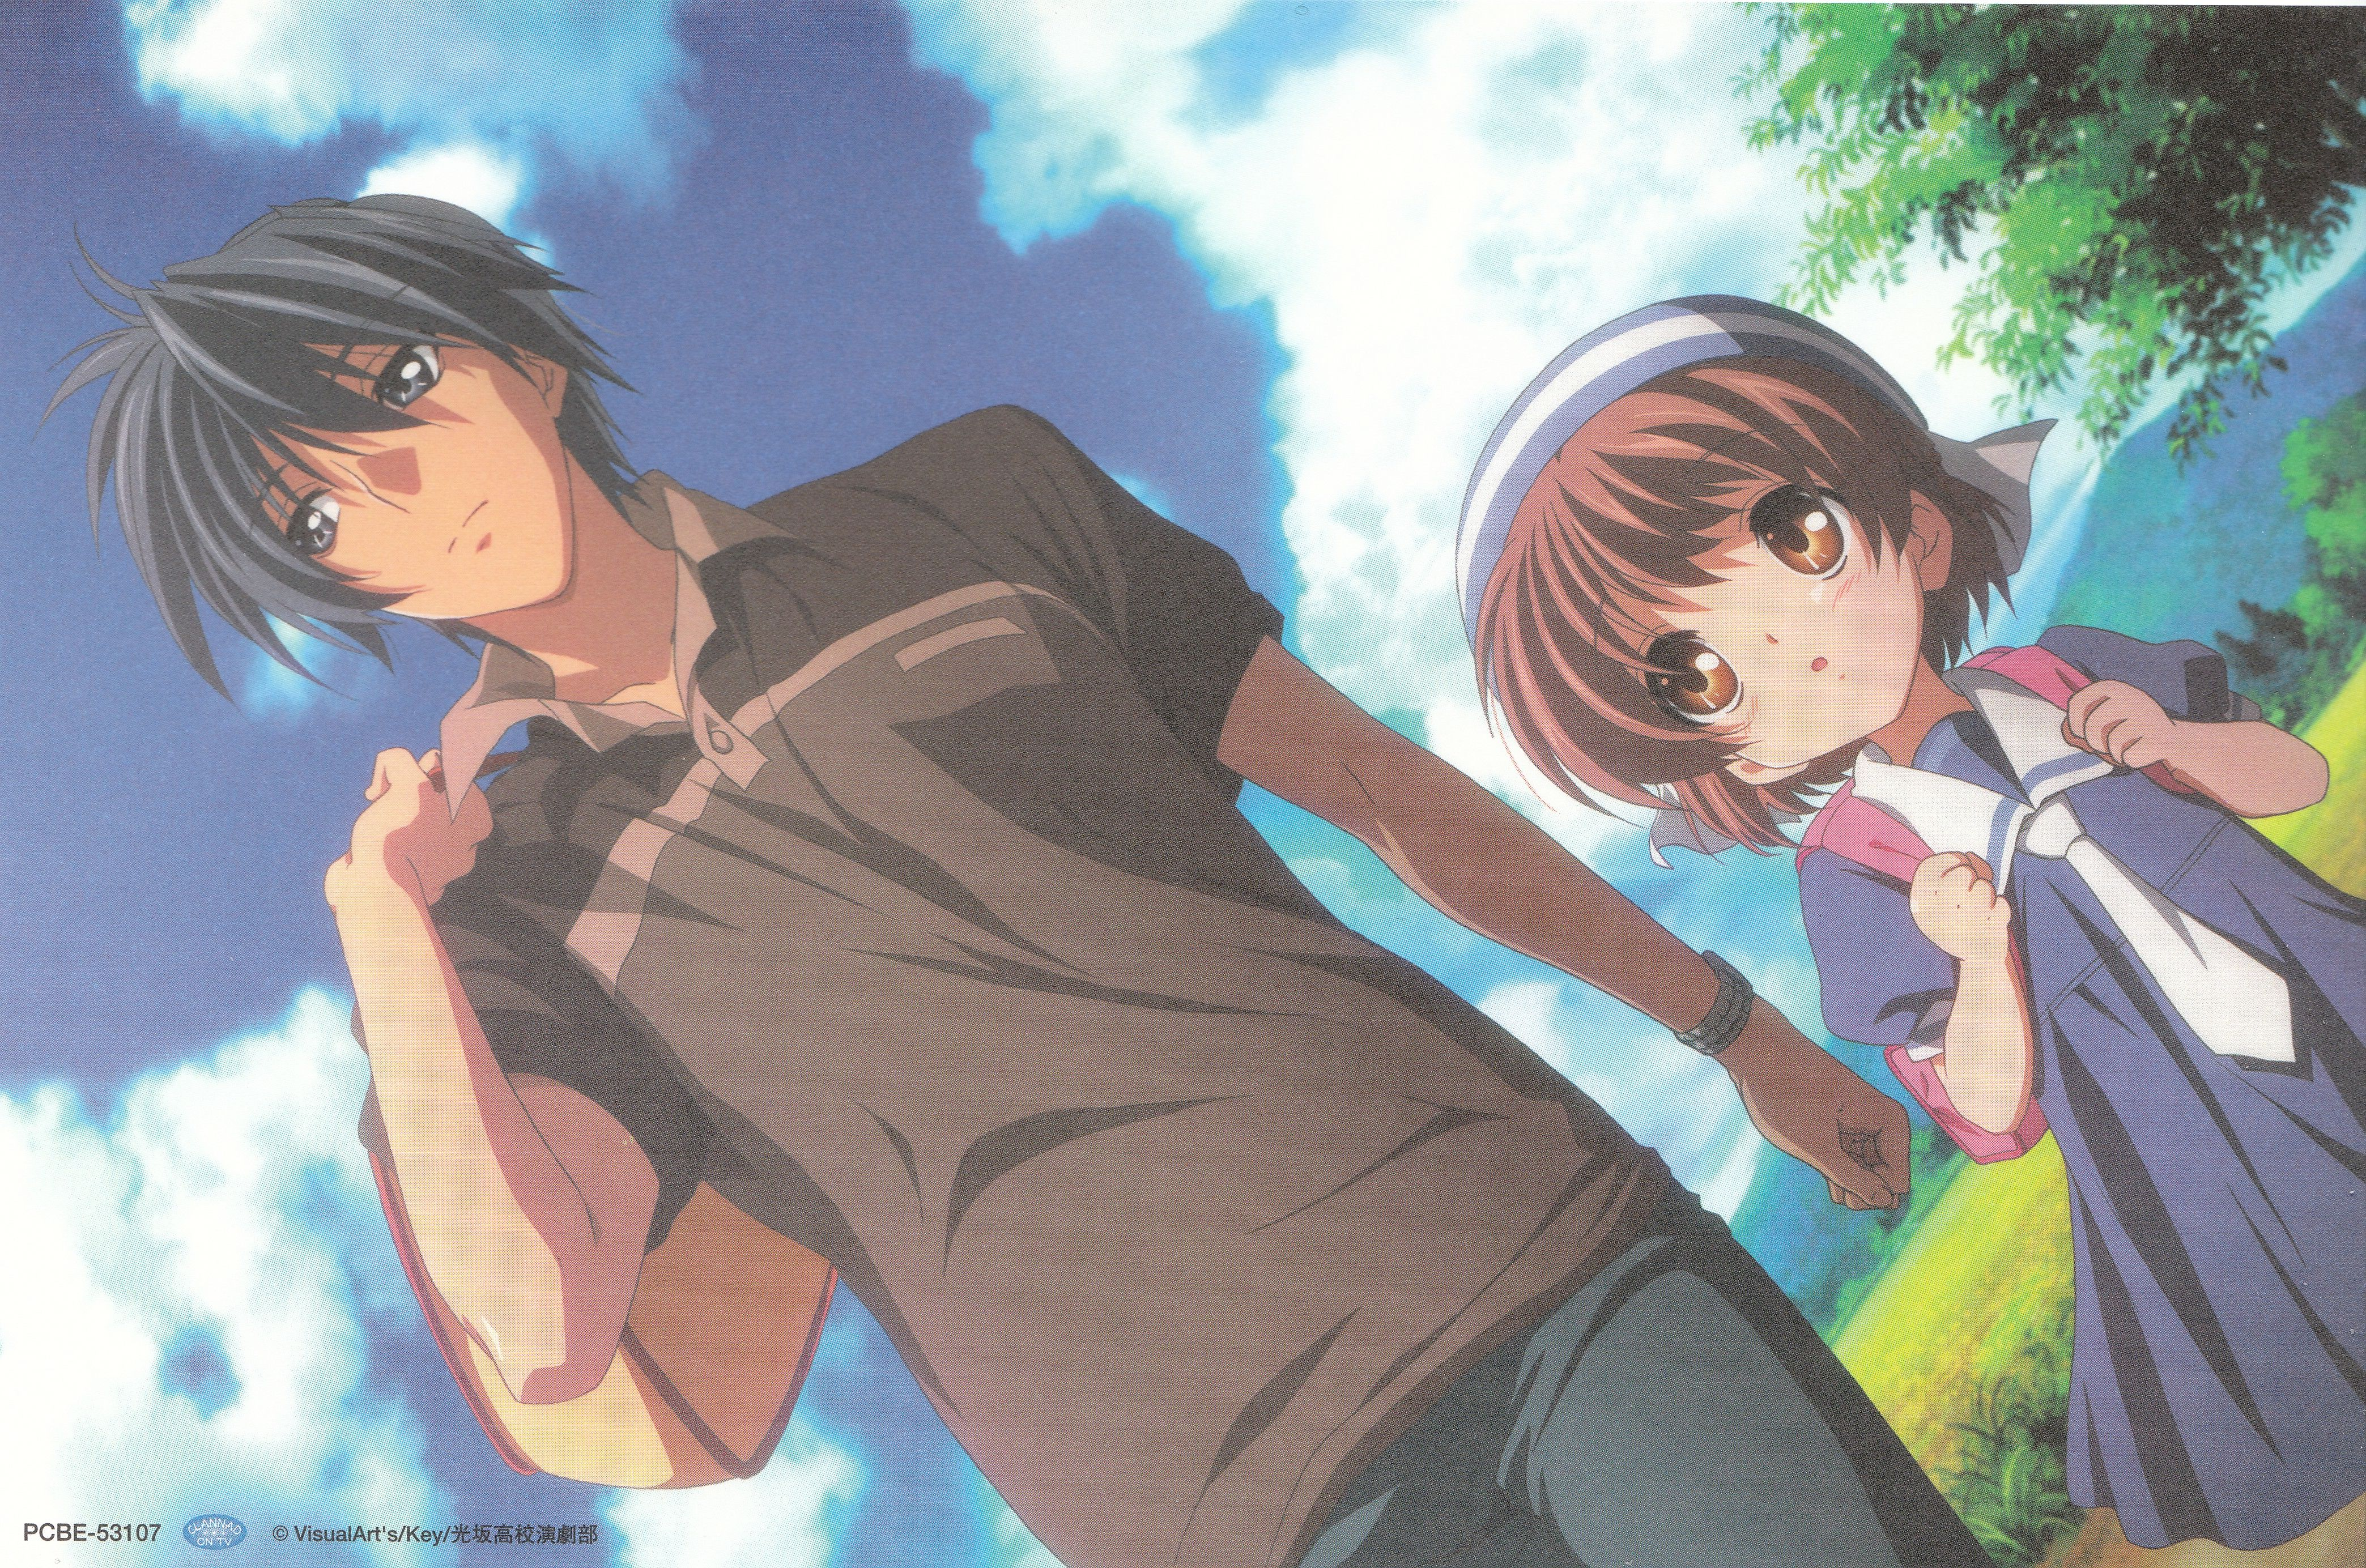 Clannad Clannad After Story Dvd Vol 7b Minitokyo